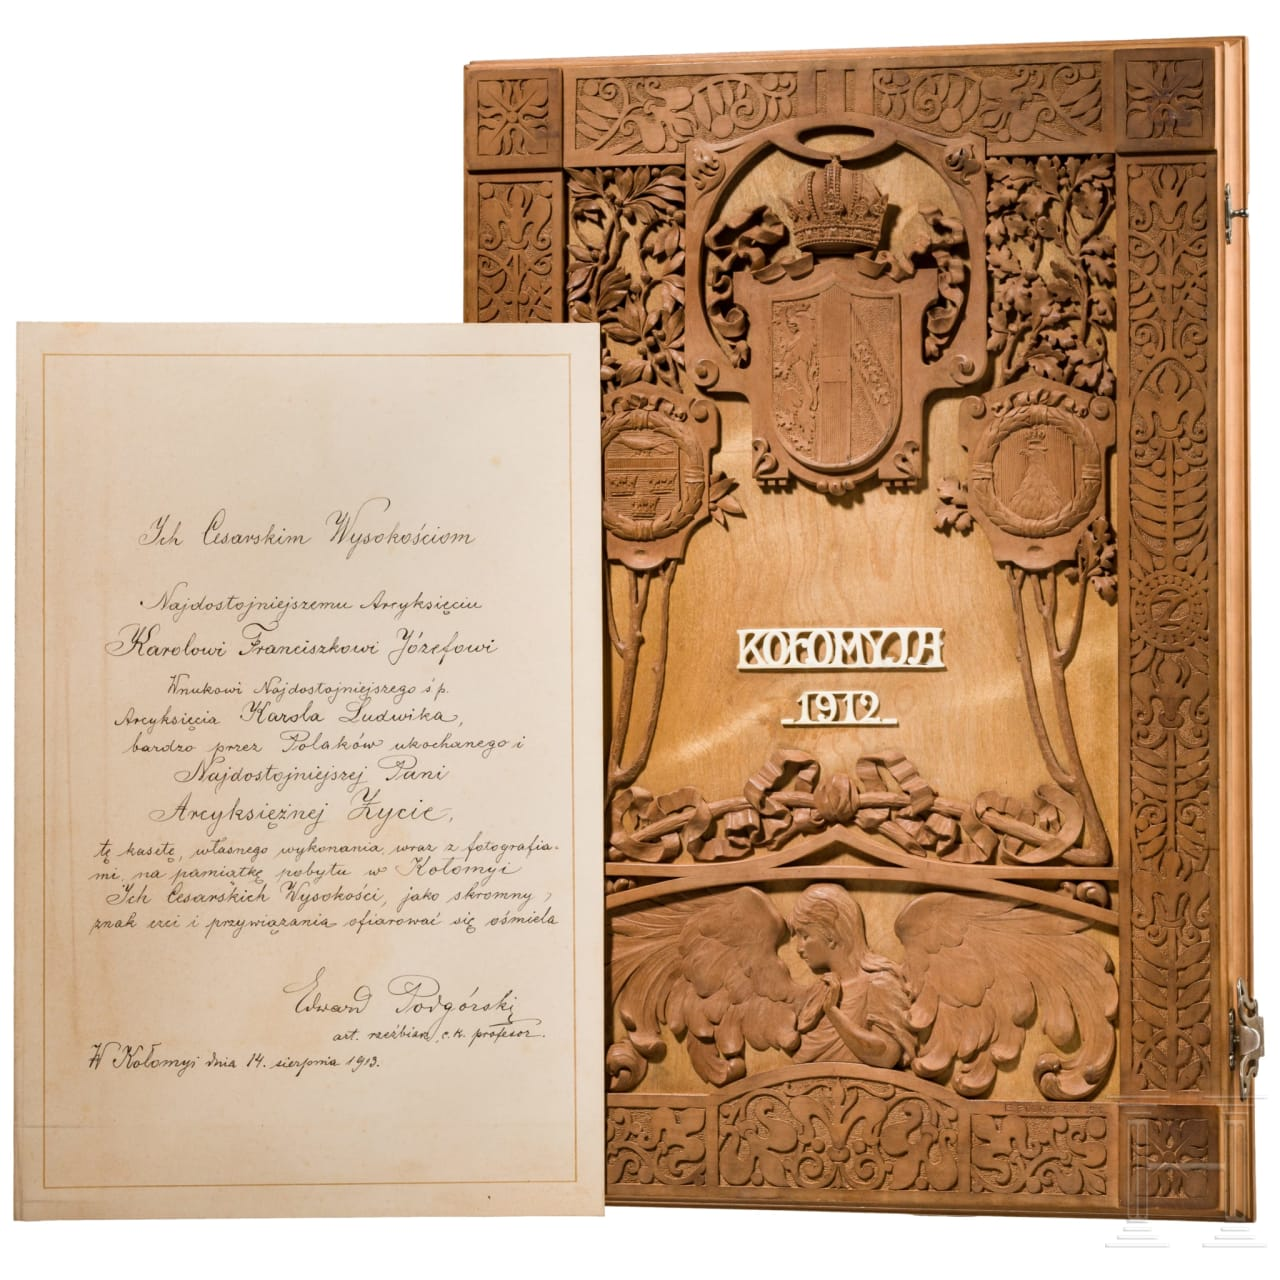 Emperor Charles I - a commemorative cassette to Kolomea, dated 1912/13